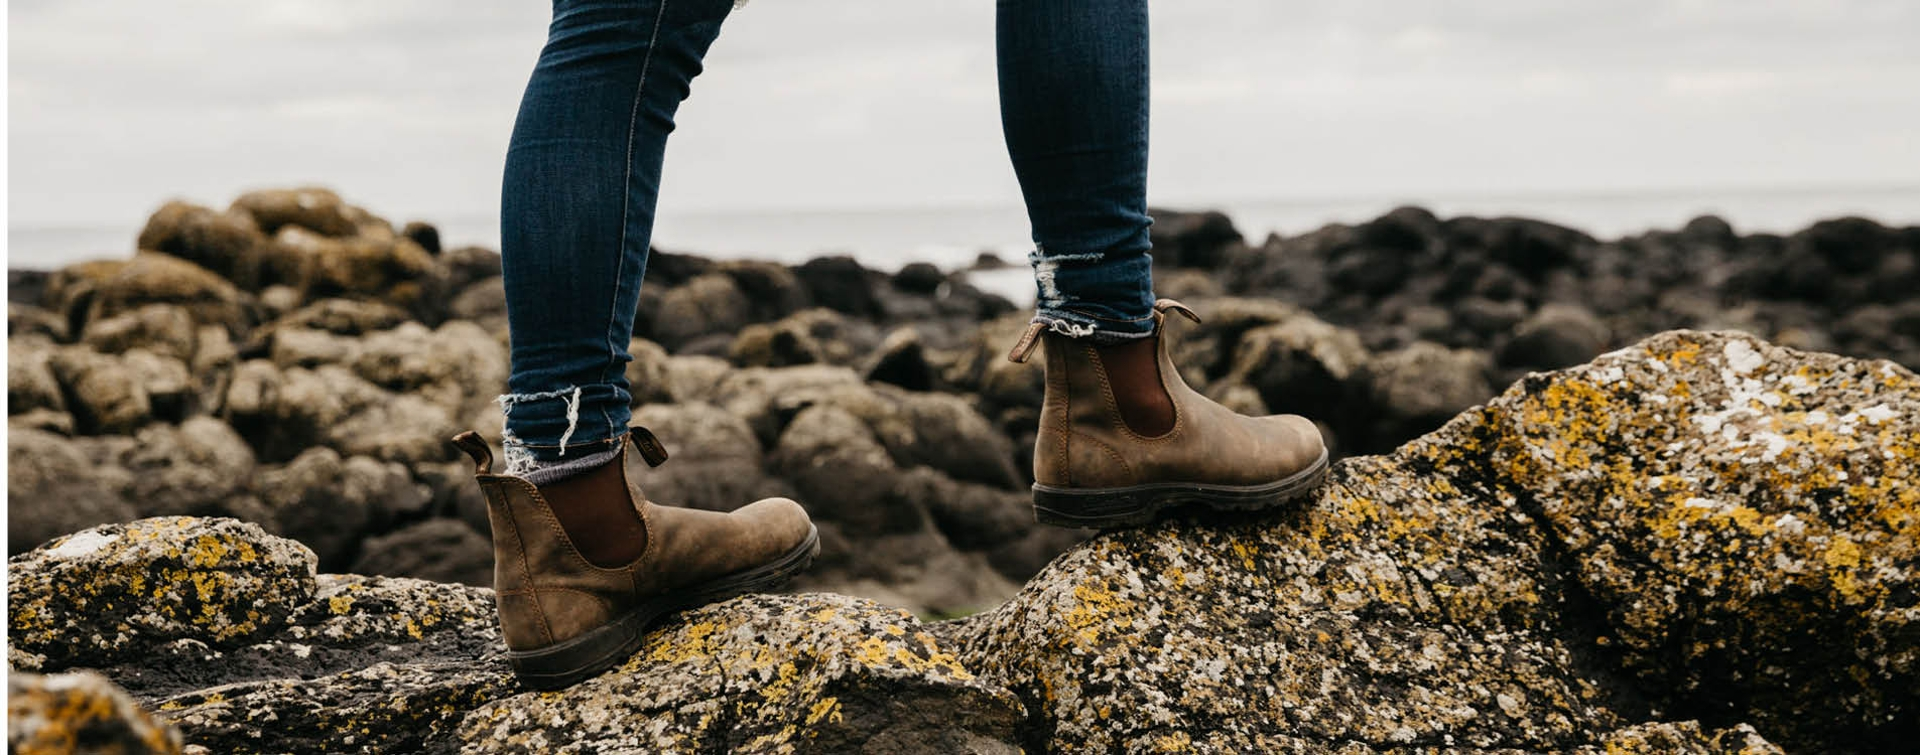 Feet with Blundstone boots standing on rocks.